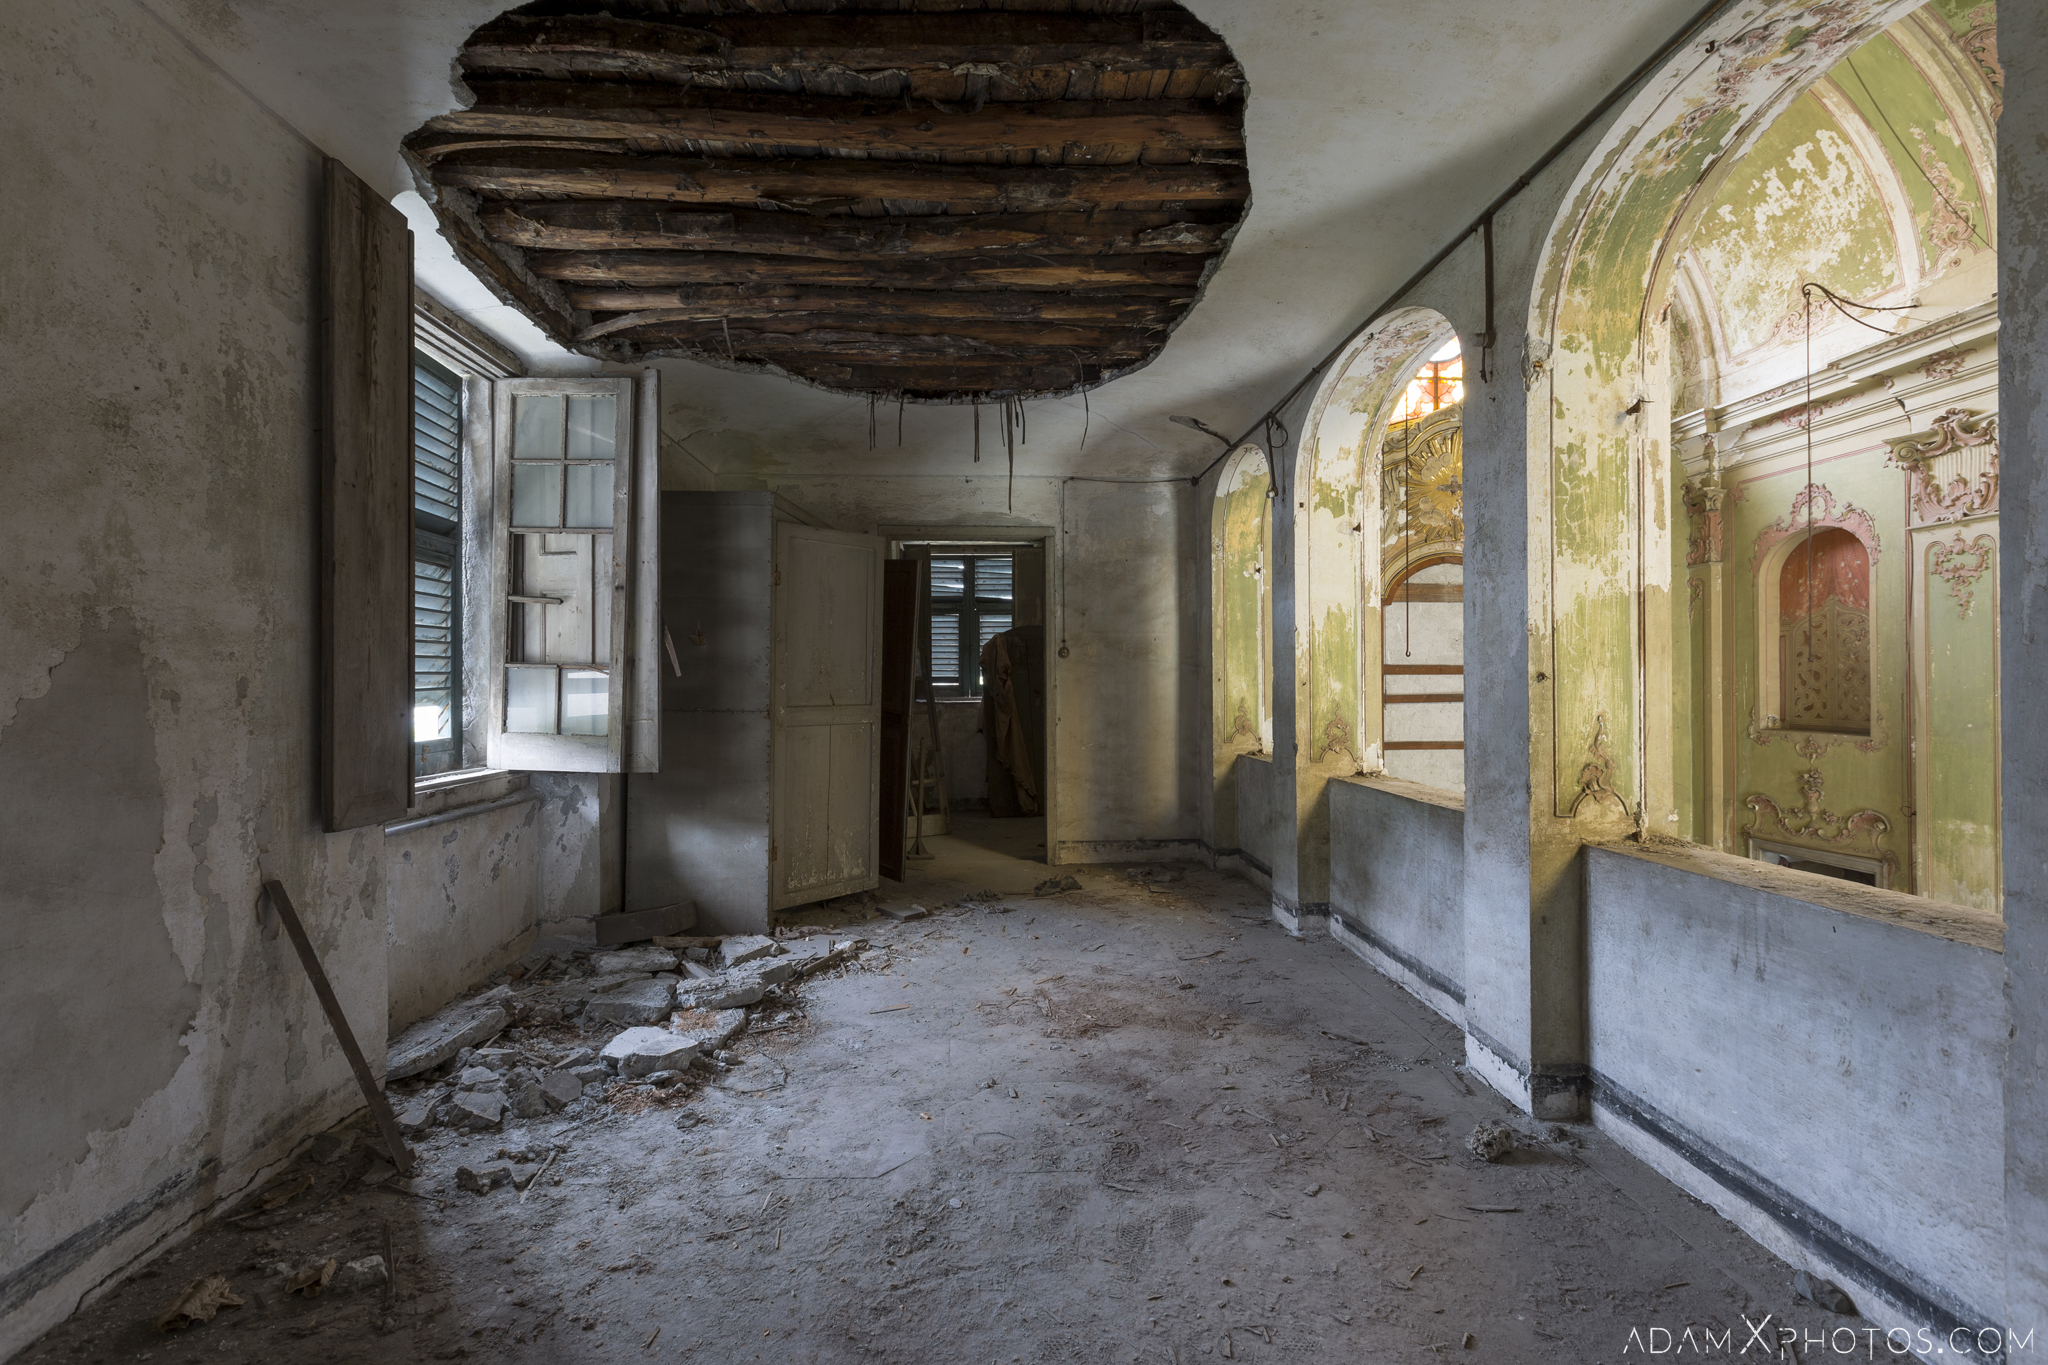 Green Church Chiesa D.C. Chiesa di Verde Chiesa Barocca Urbex Adam X Urban Exploration Italy Italia Access 2016 Abandoned decay lost forgotten infiltration derelict location creepy haunting eerie